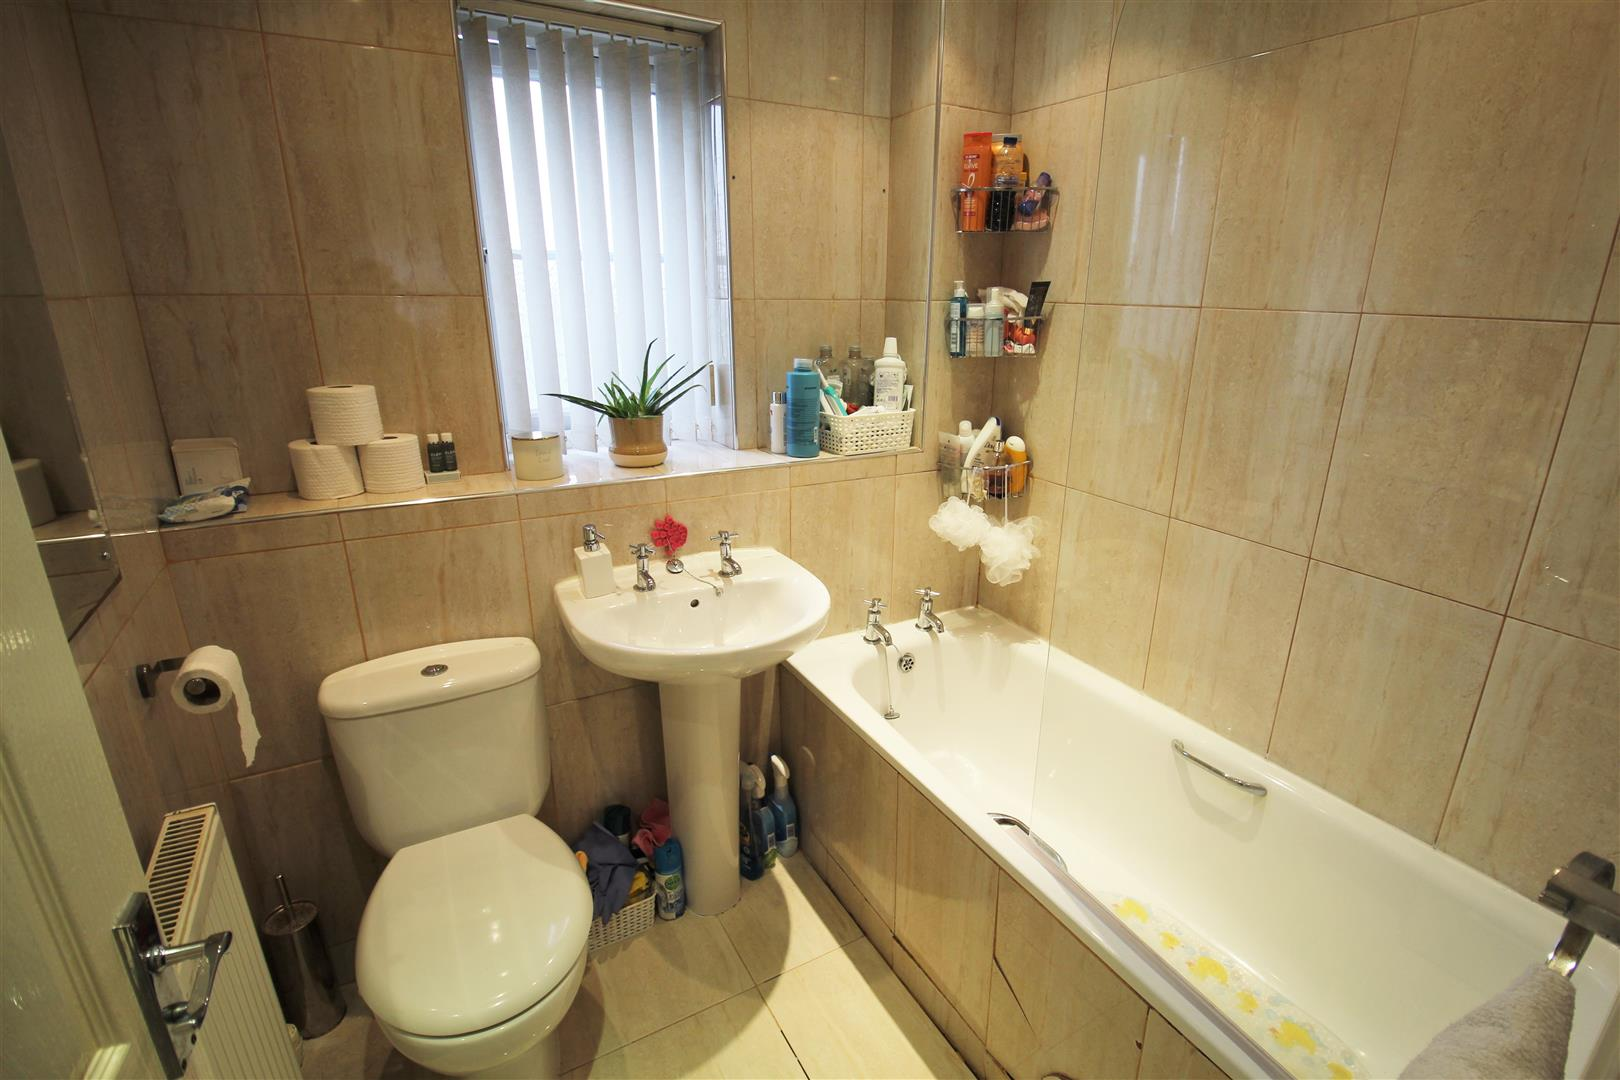 3 Bedrooms, House - End Town House, Primary Avenue, Old Roan